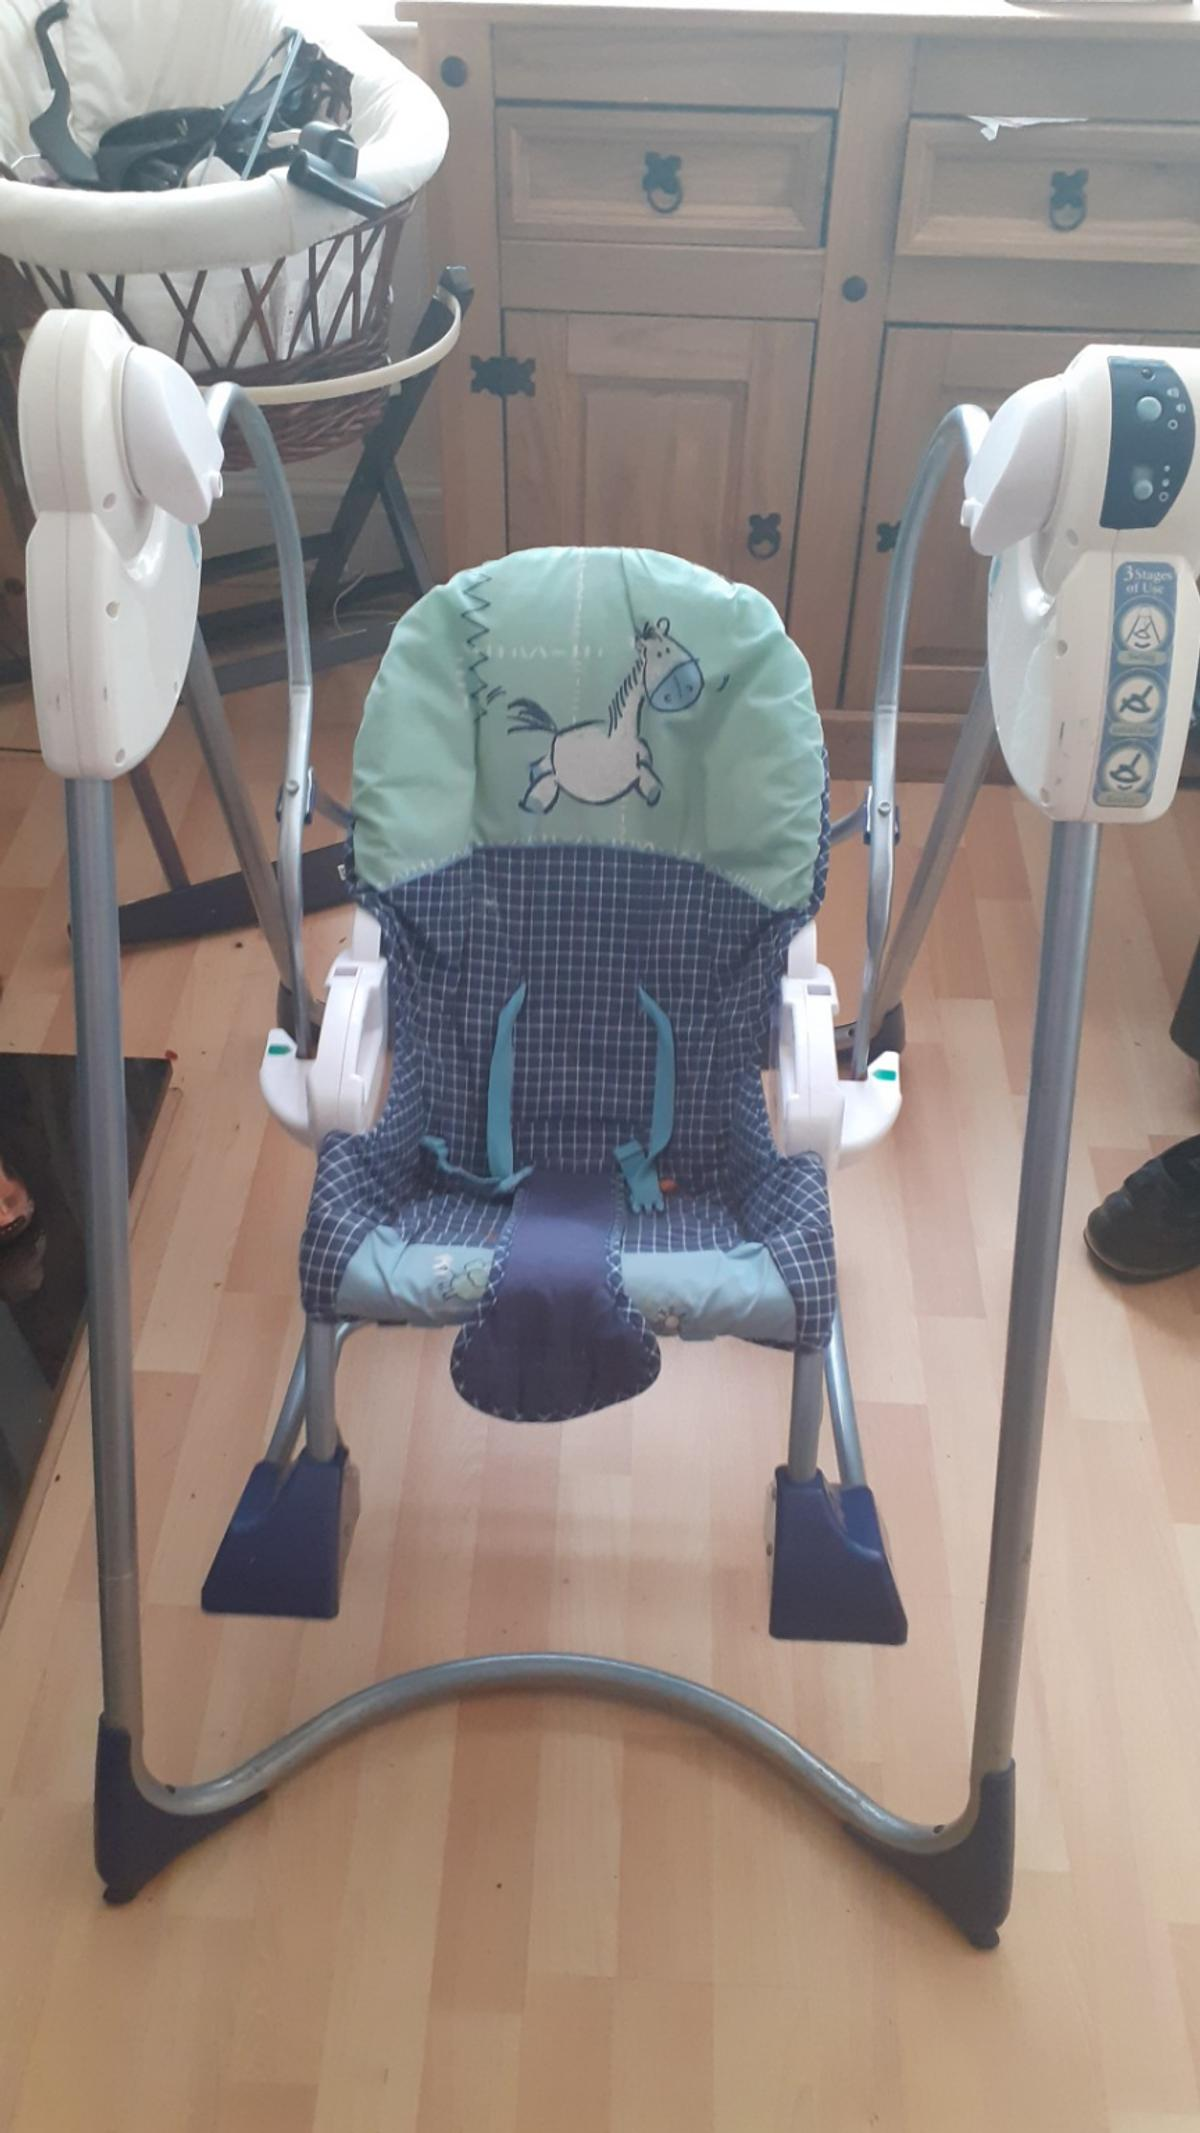 smart stages 3 in 1 rocker swing battery operated with music also comes off to be a sit up lie down chair